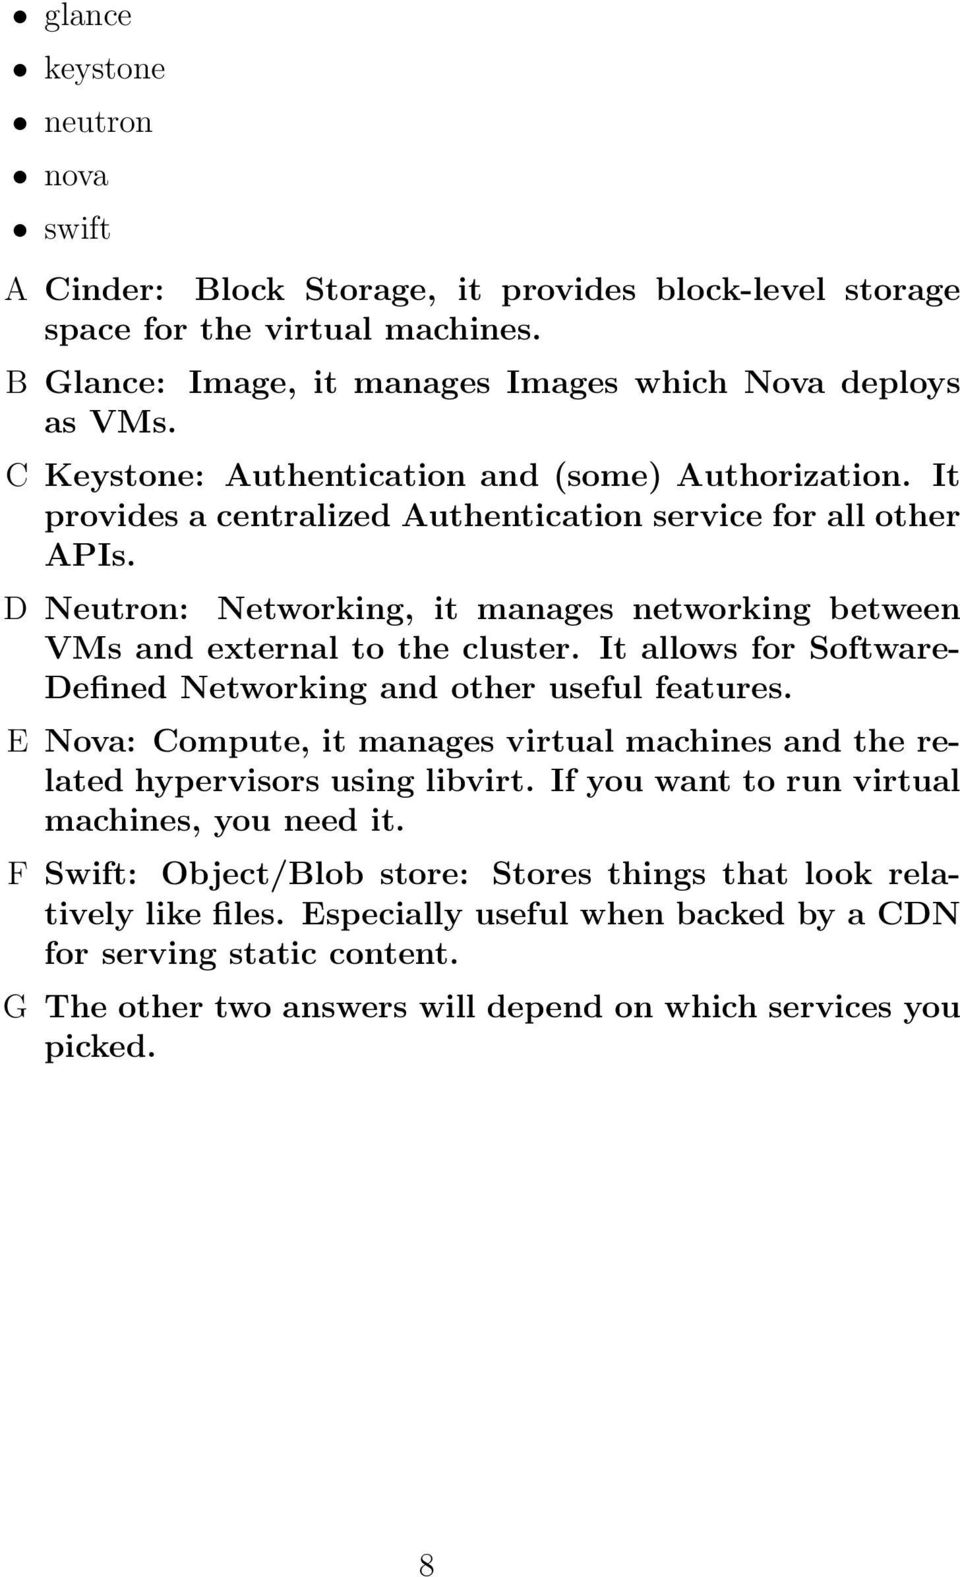 D Neutron: Networking, it manages networking between VMs and external to the cluster. It allows for Software- Defined Networking and other useful features.